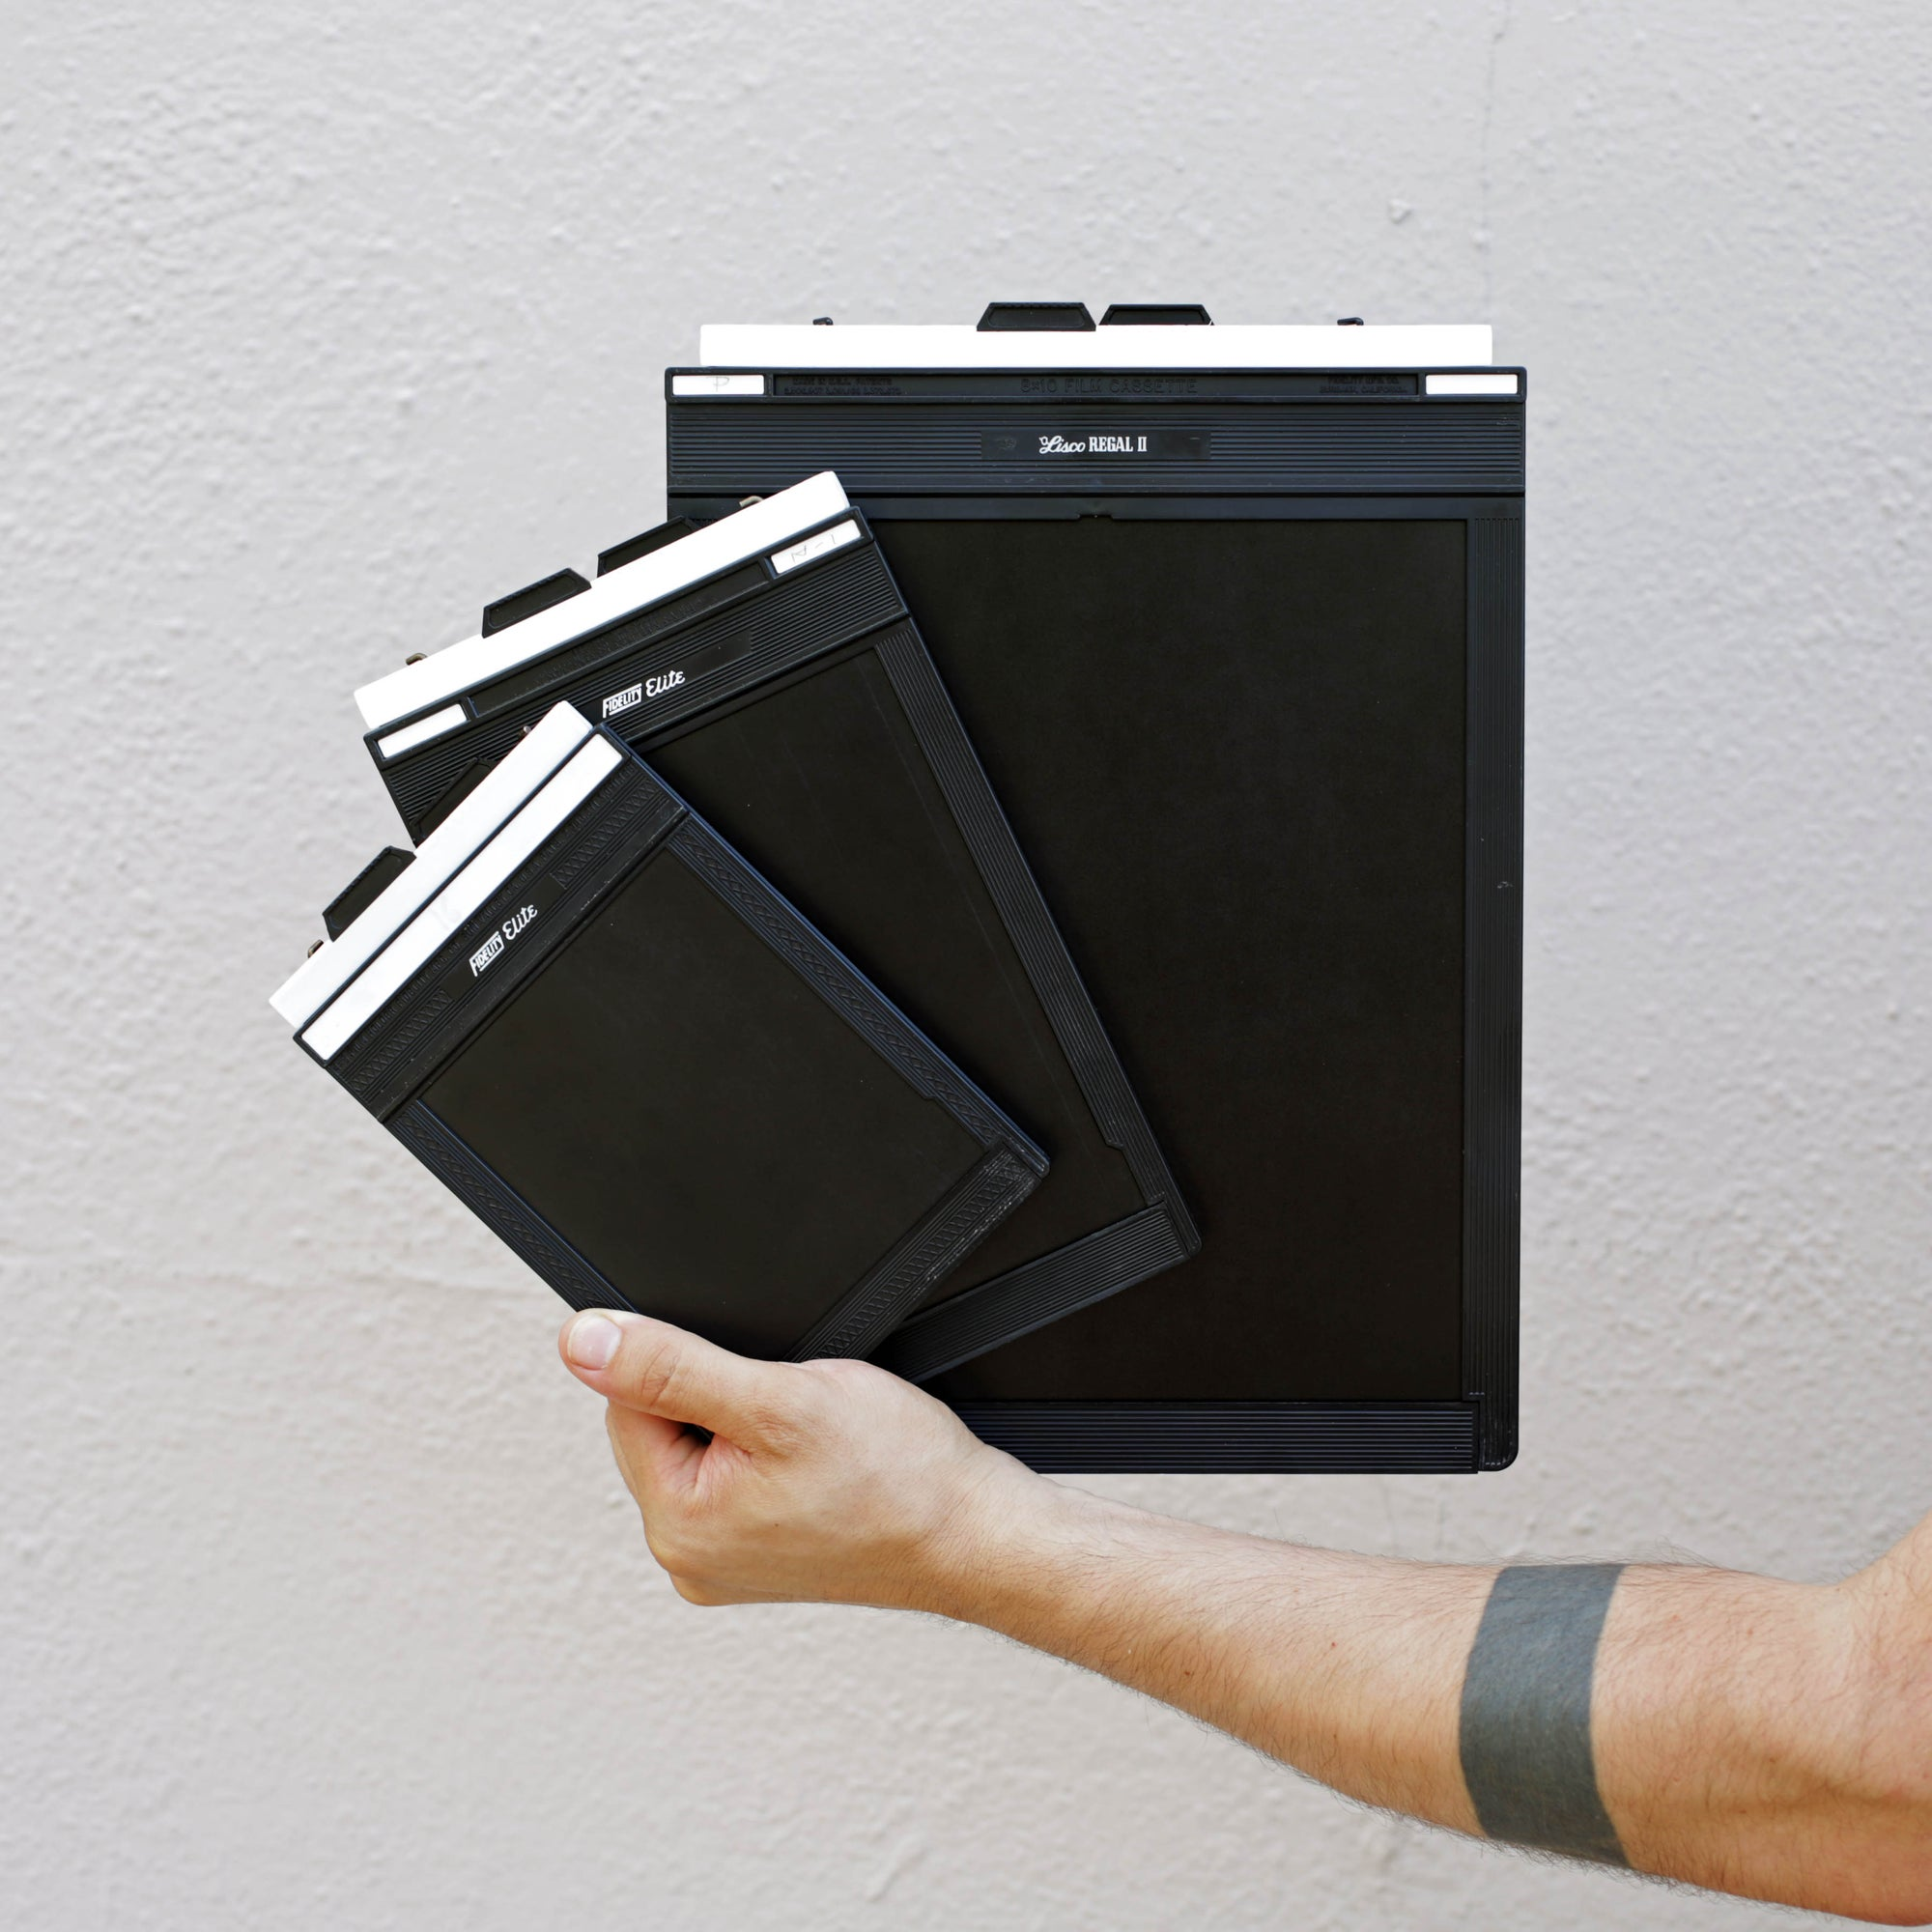 Sheet Film Holders For Large Format Cameras 4x5 5x7 8x10